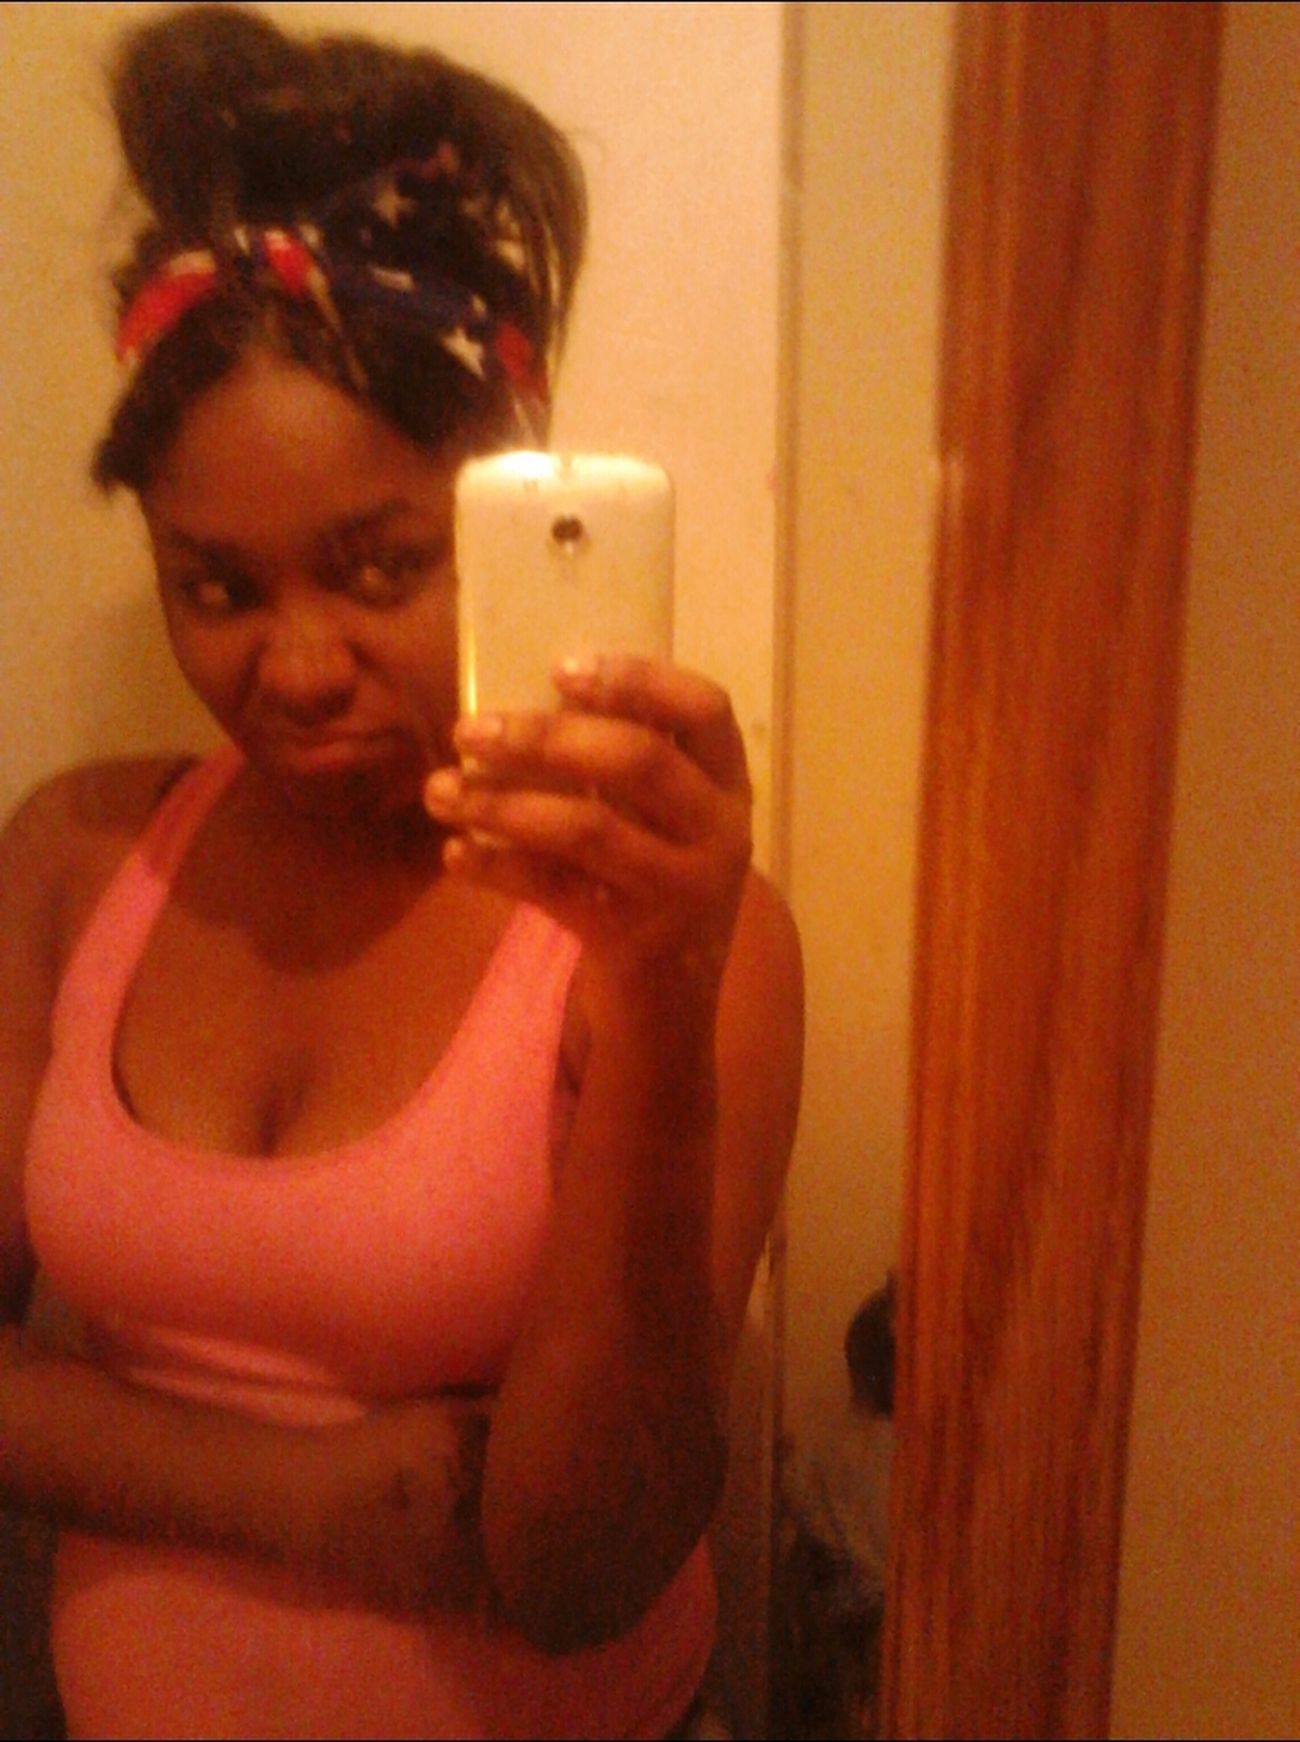 gm play around in the mirror!!!llz